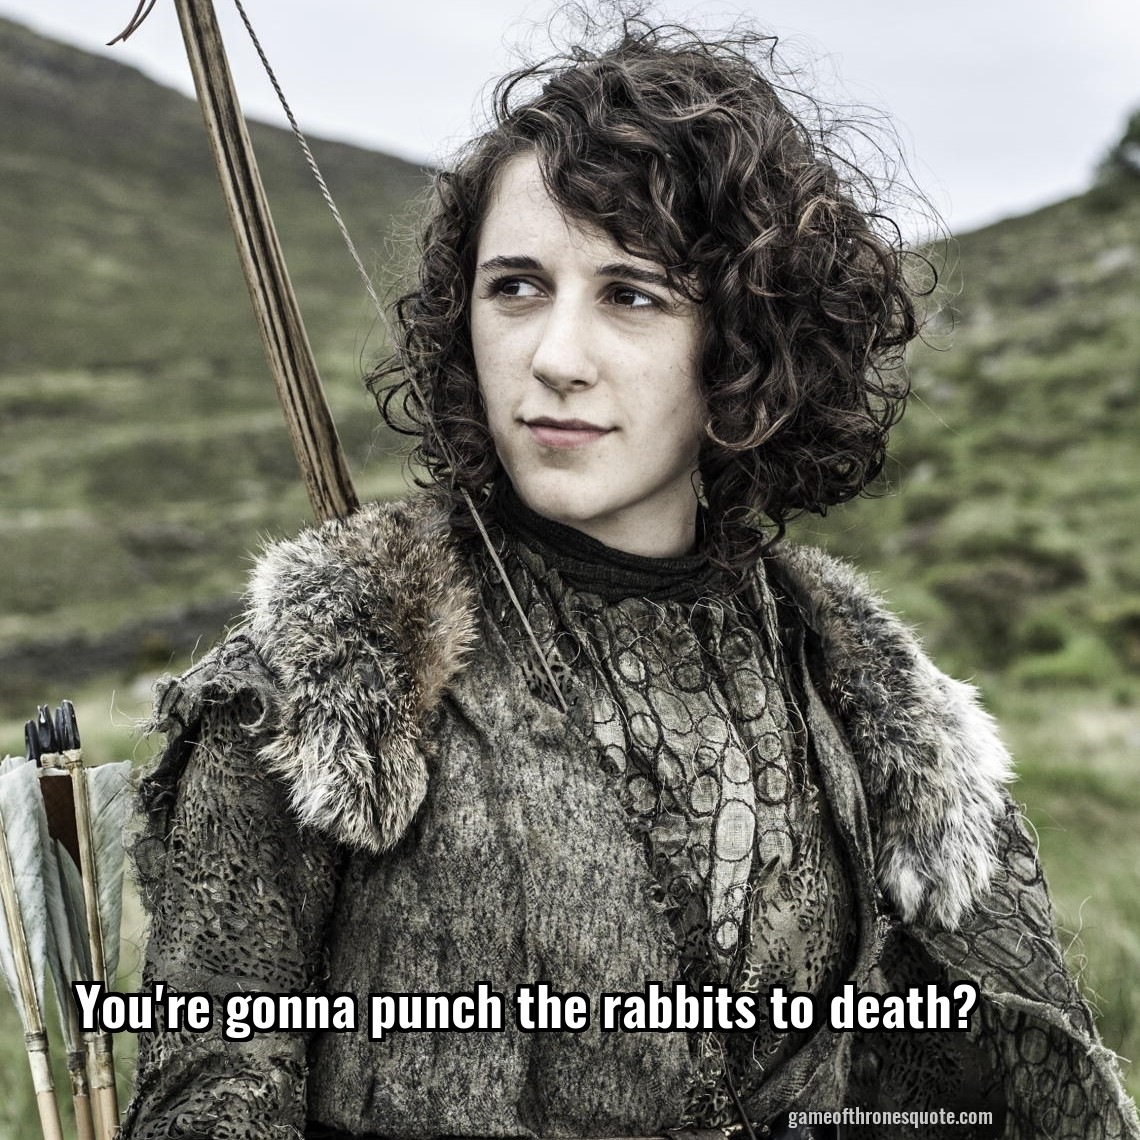 You're gonna punch the rabbits to death?